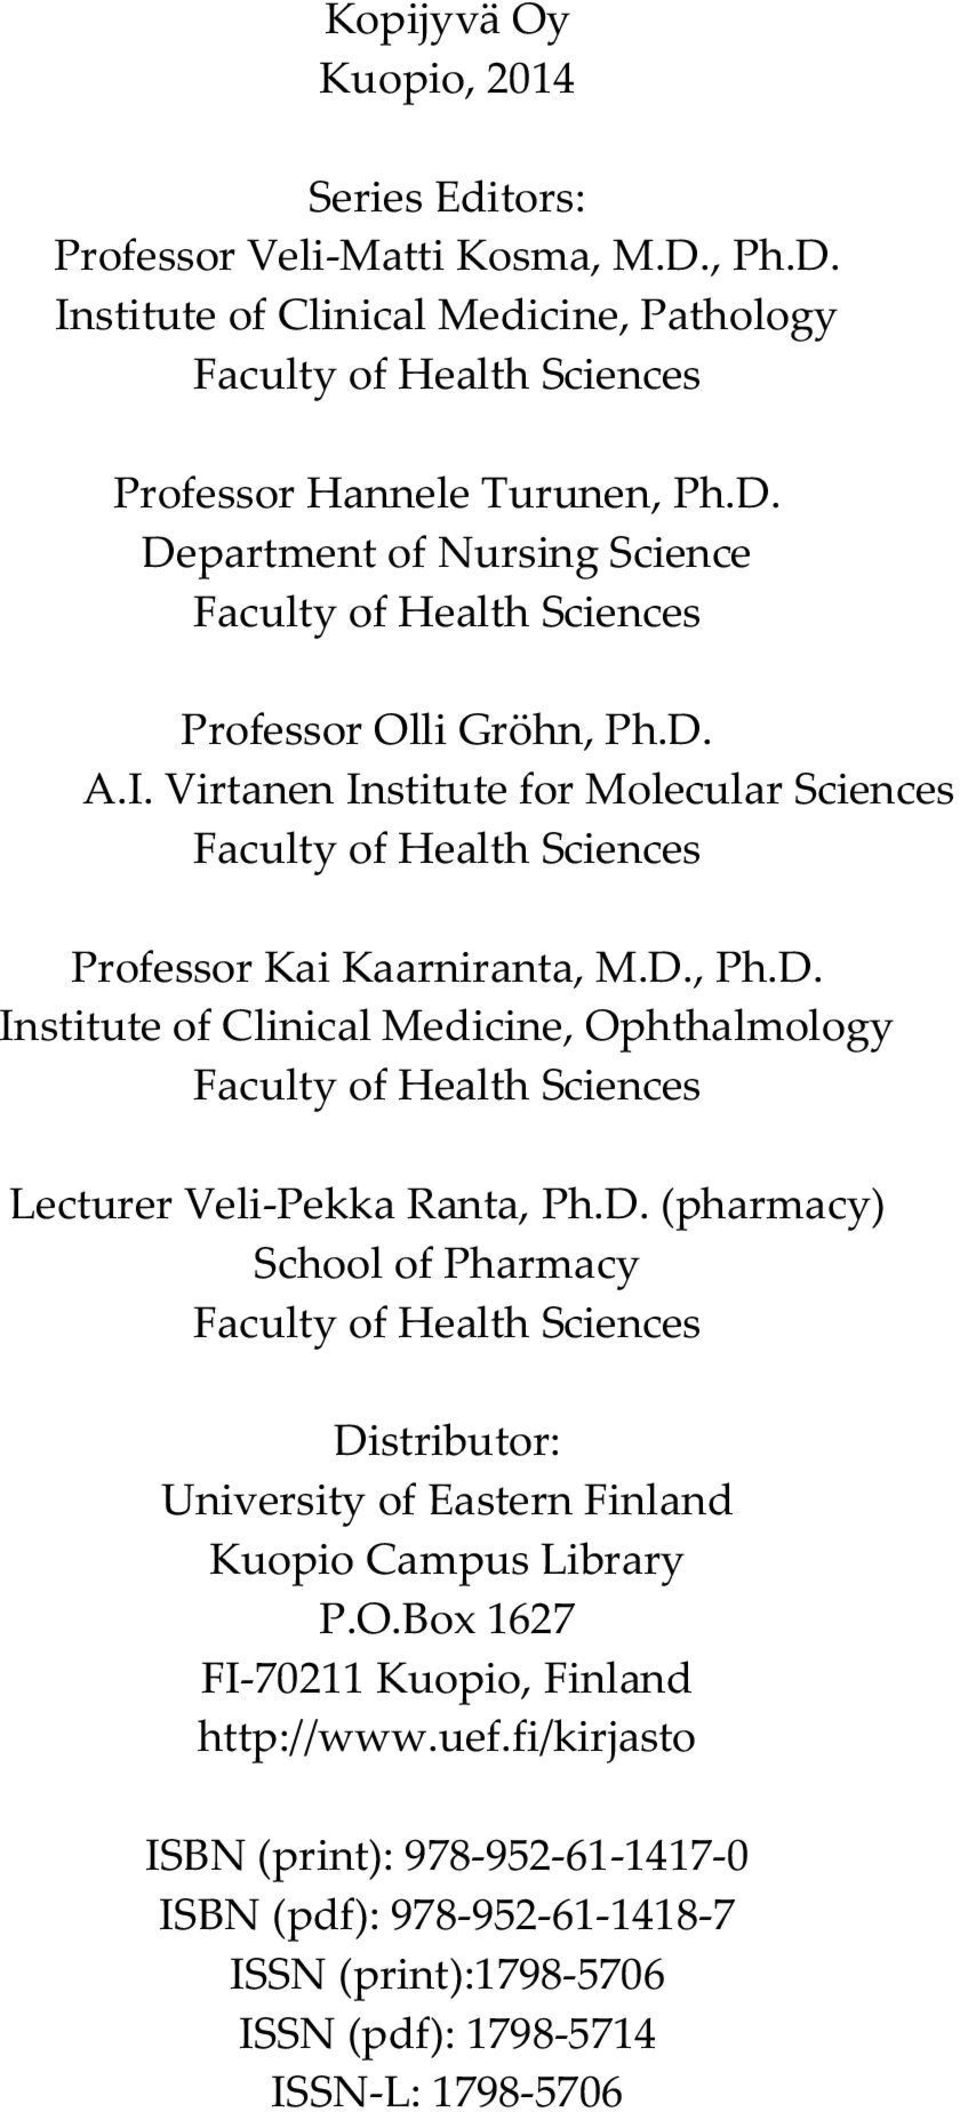 D. (pharmacy) School of Pharmacy Faculty of Health Sciences Distributor: University of Eastern Finland Kuopio Campus Library P.O.Box 1627 FI-70211 Kuopio, Finland http://www.uef.